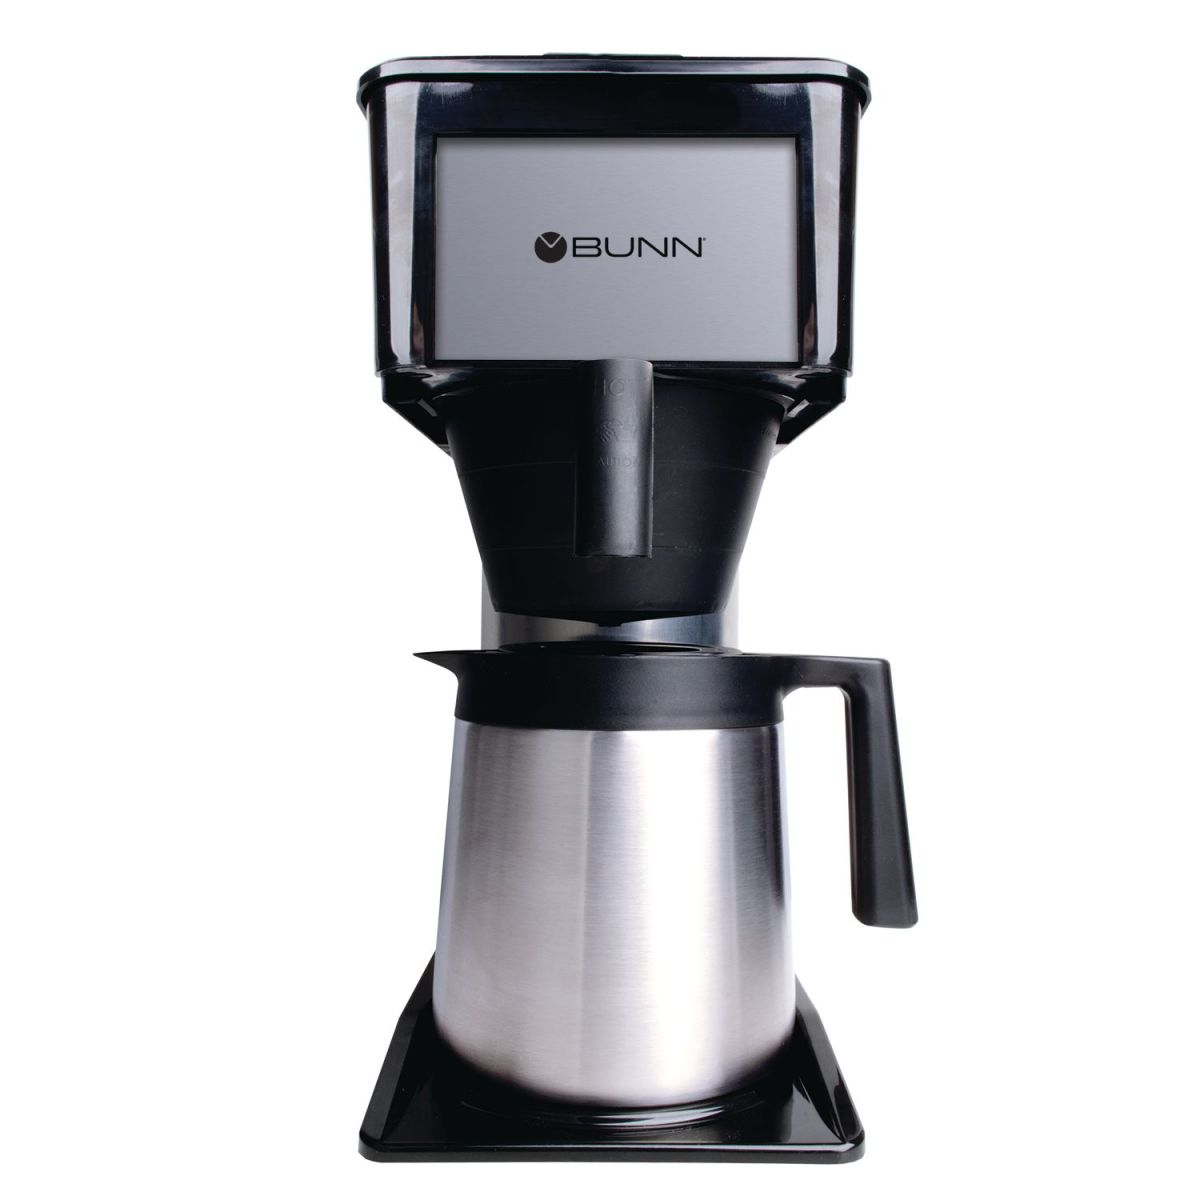 Bunn Classic Speed Brew Thermal Coffee Maker BT 10 Cup Velocity Brew